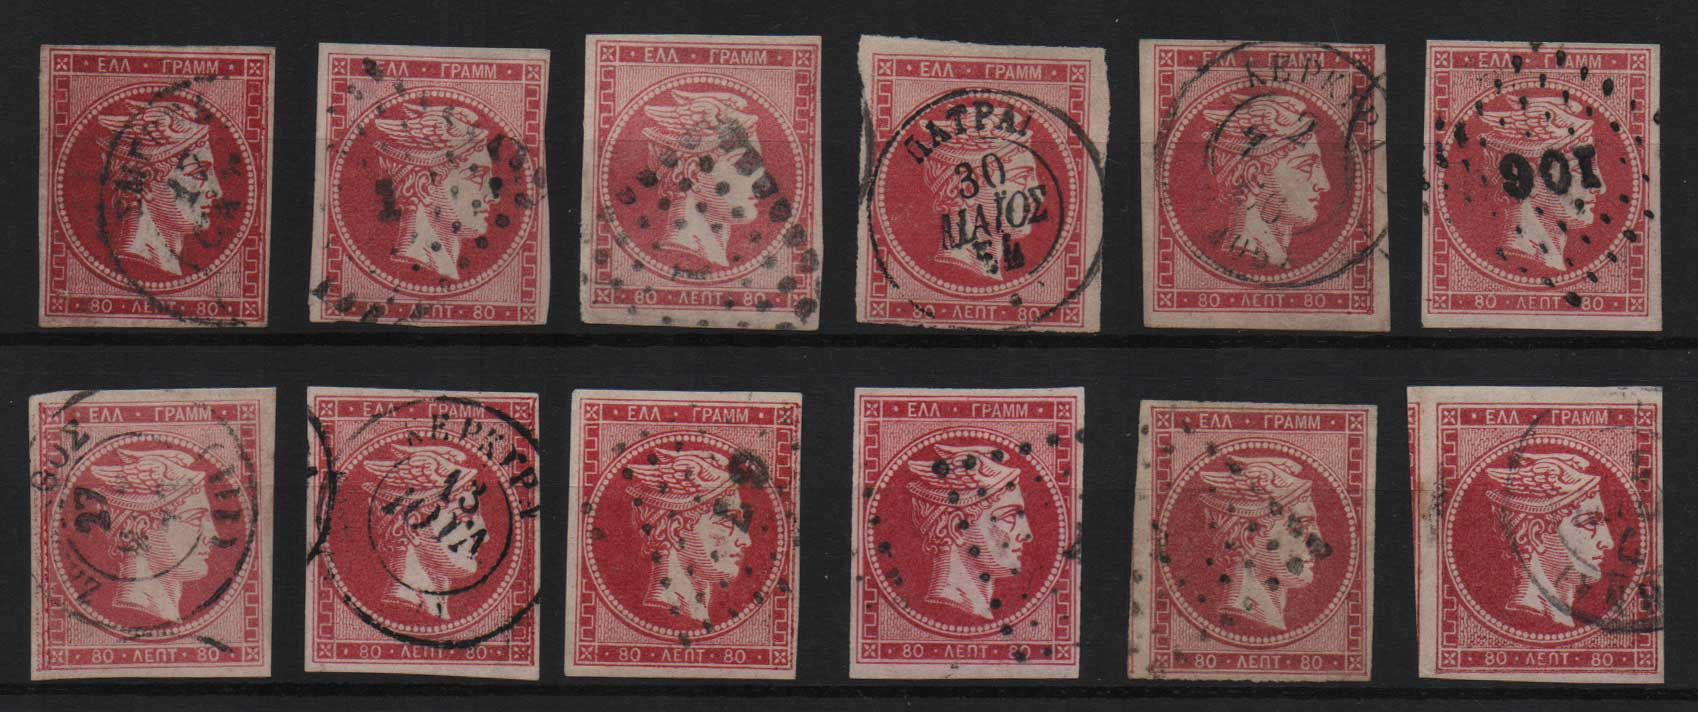 Lot 4 - -  LARGE HERMES HEAD large hermes head -  Athens Auctions Public Auction 67 General Stamp Sale